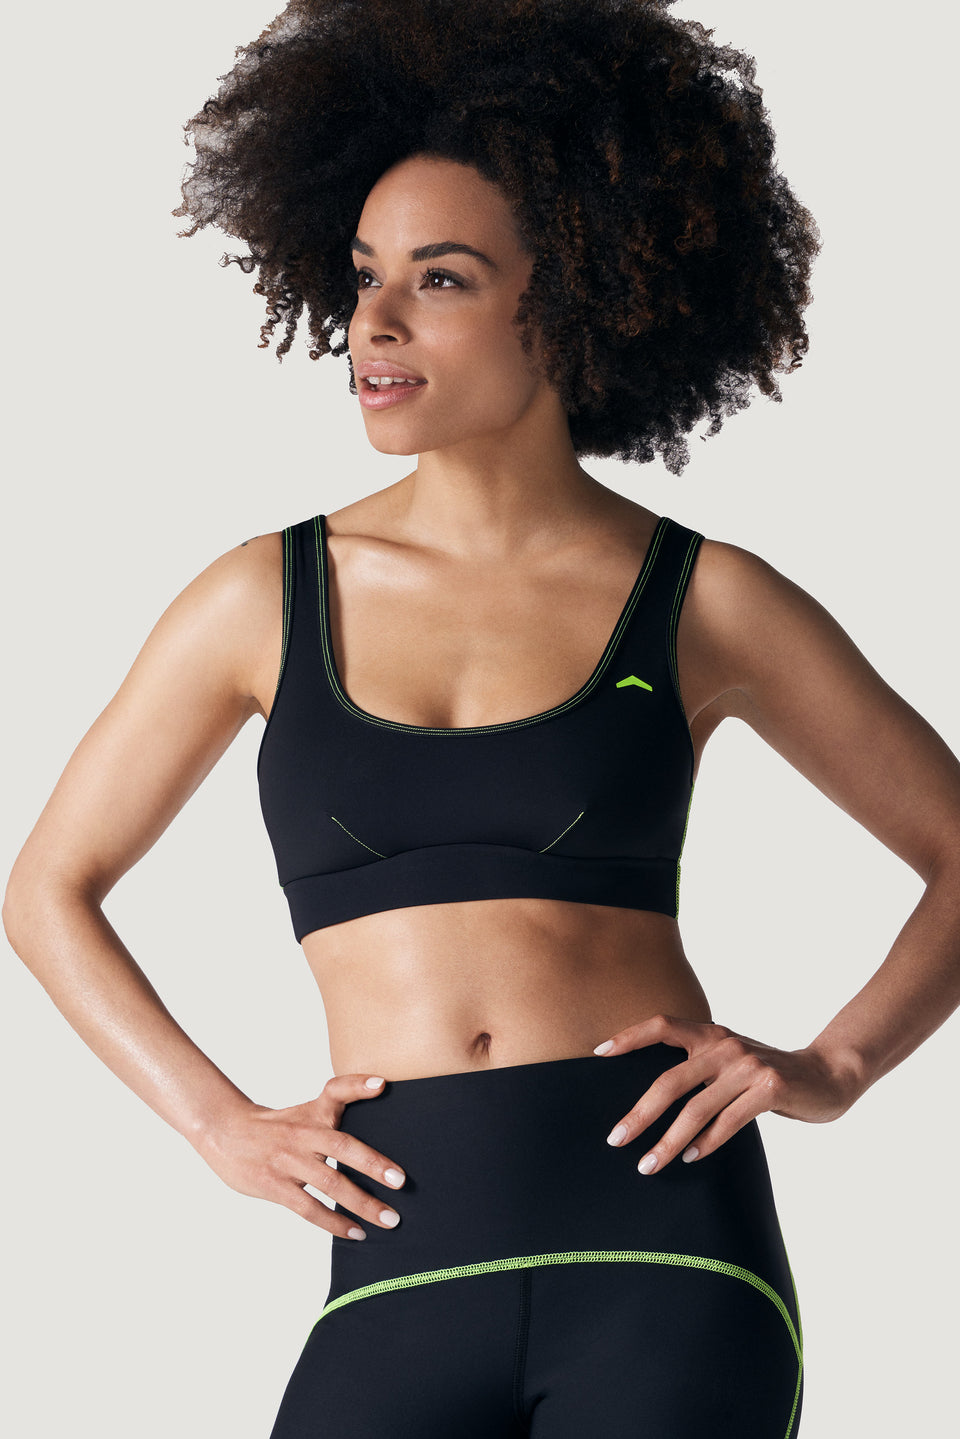 TMPL Sportswear Women's Enlight Medium Impact Sports Bra